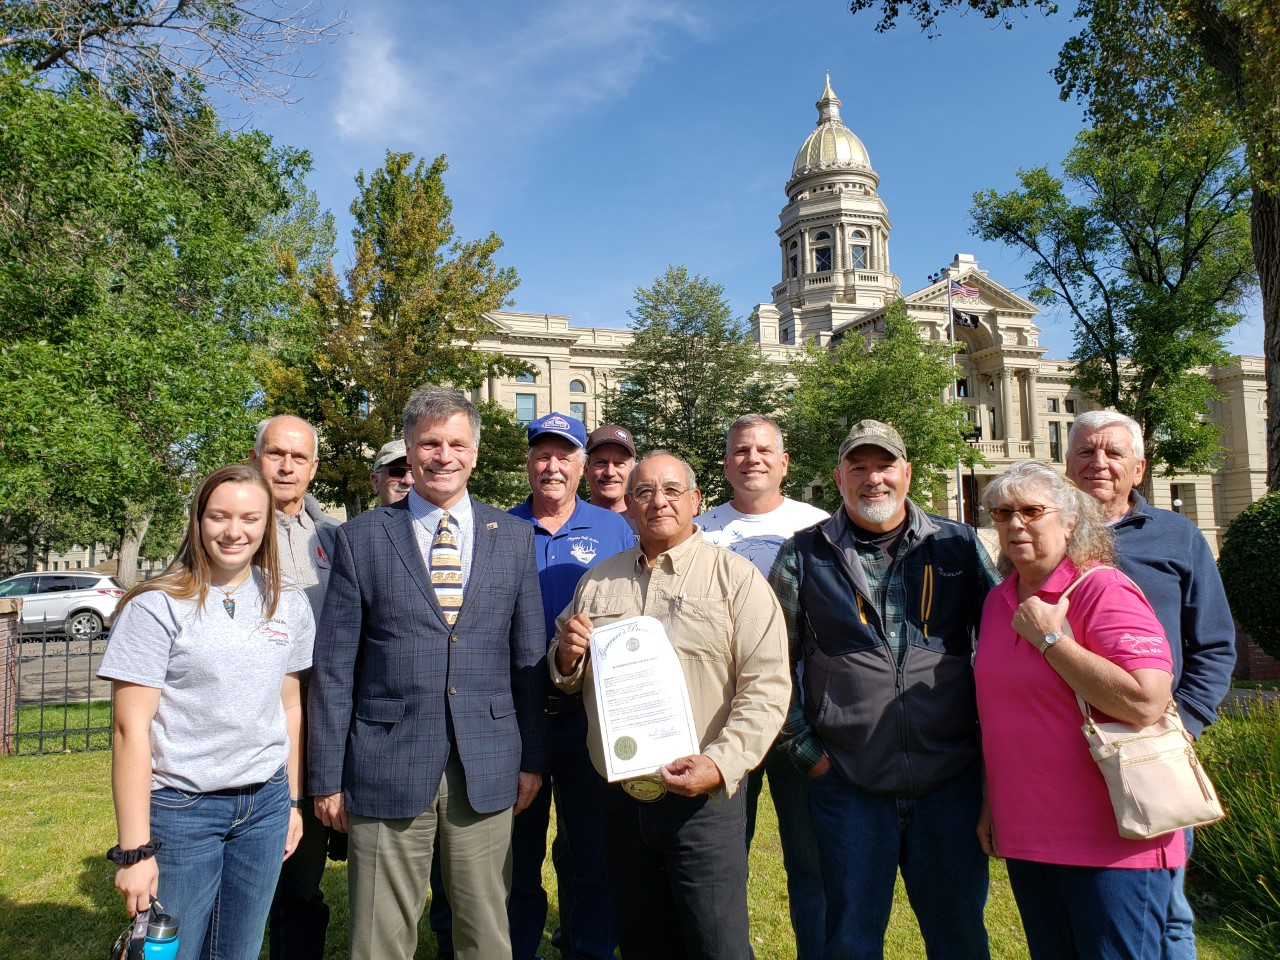 Governor's Archery Proclamation 2019